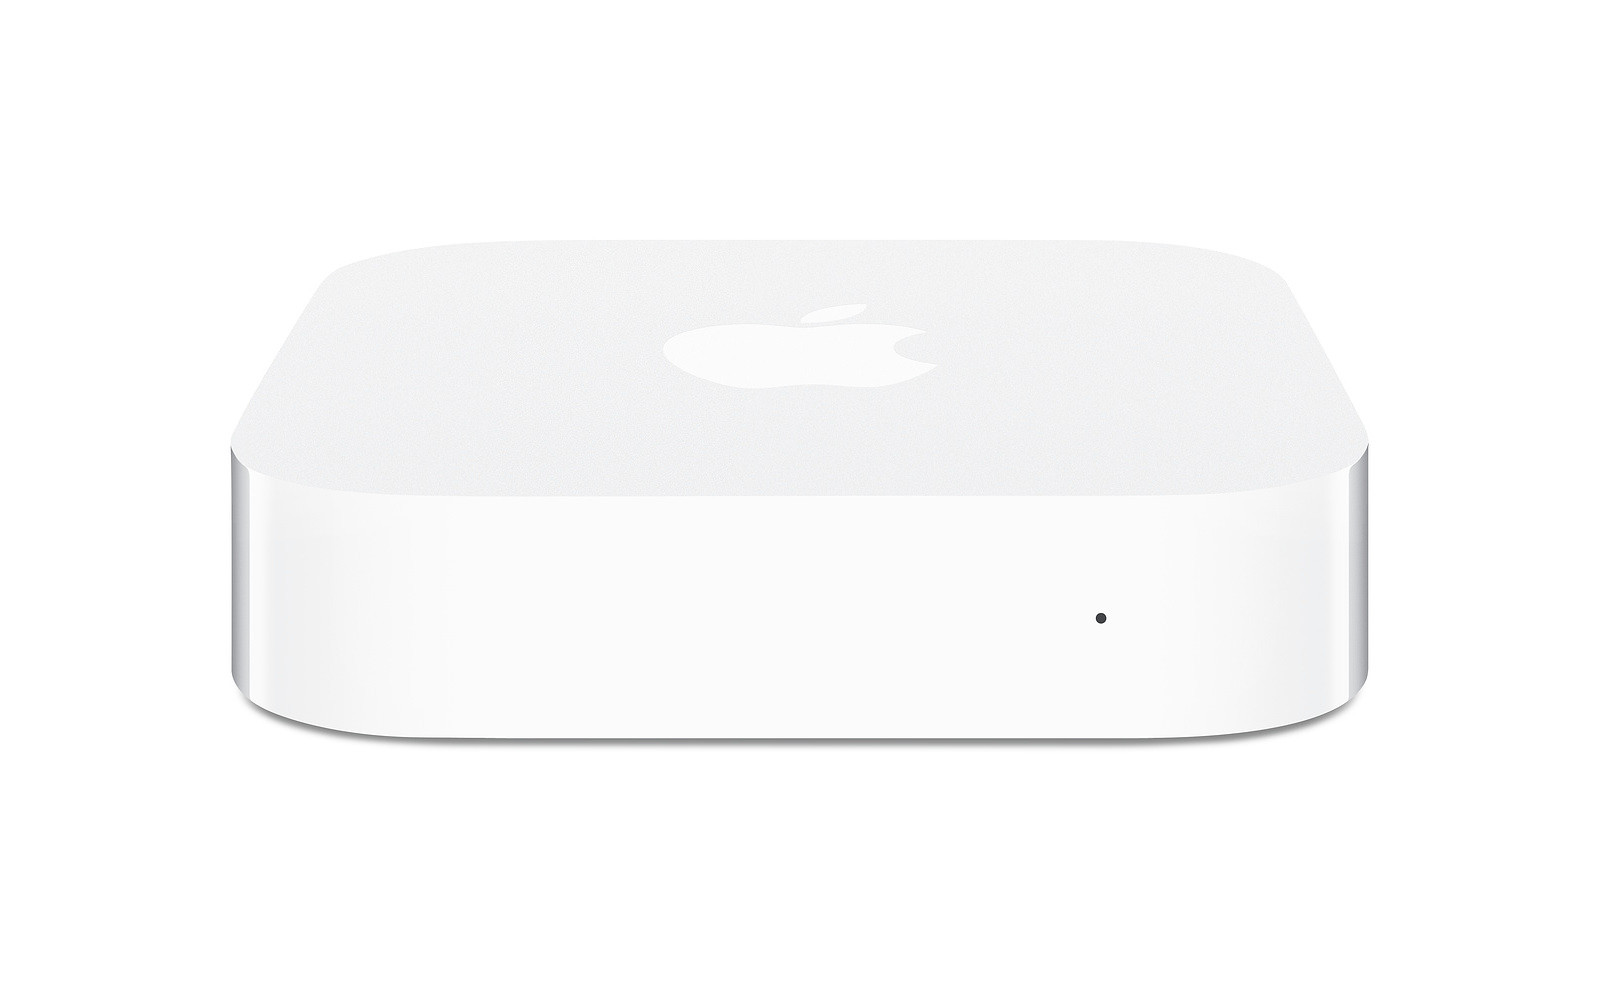 AirPort-Express-update-gets-airplay2-support.jpg